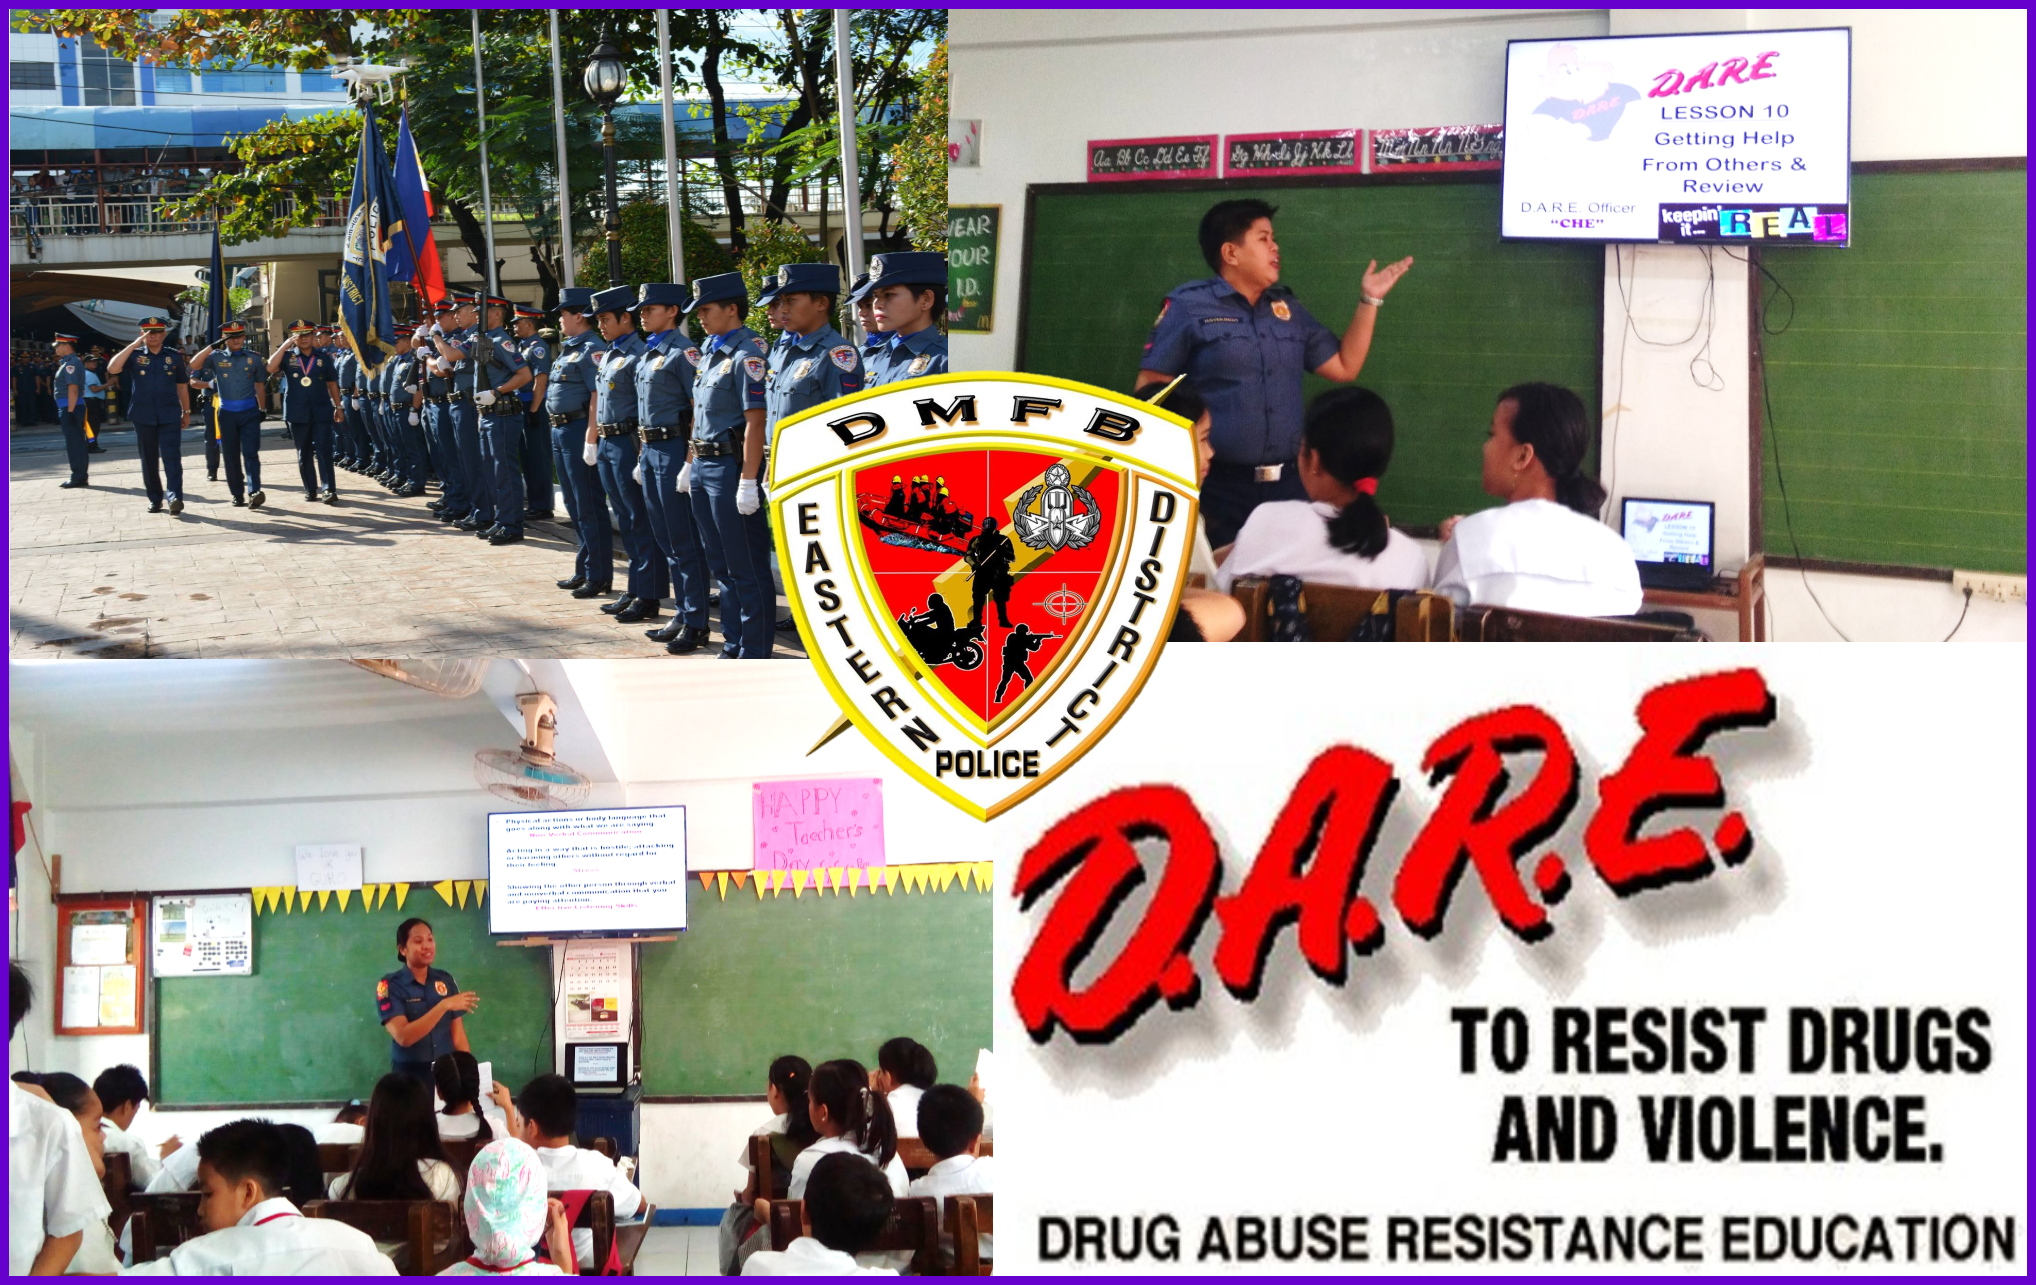 D.A.R.E. Officer of District Mobile Force Battalion conducts Drug Abuse Resistance Education